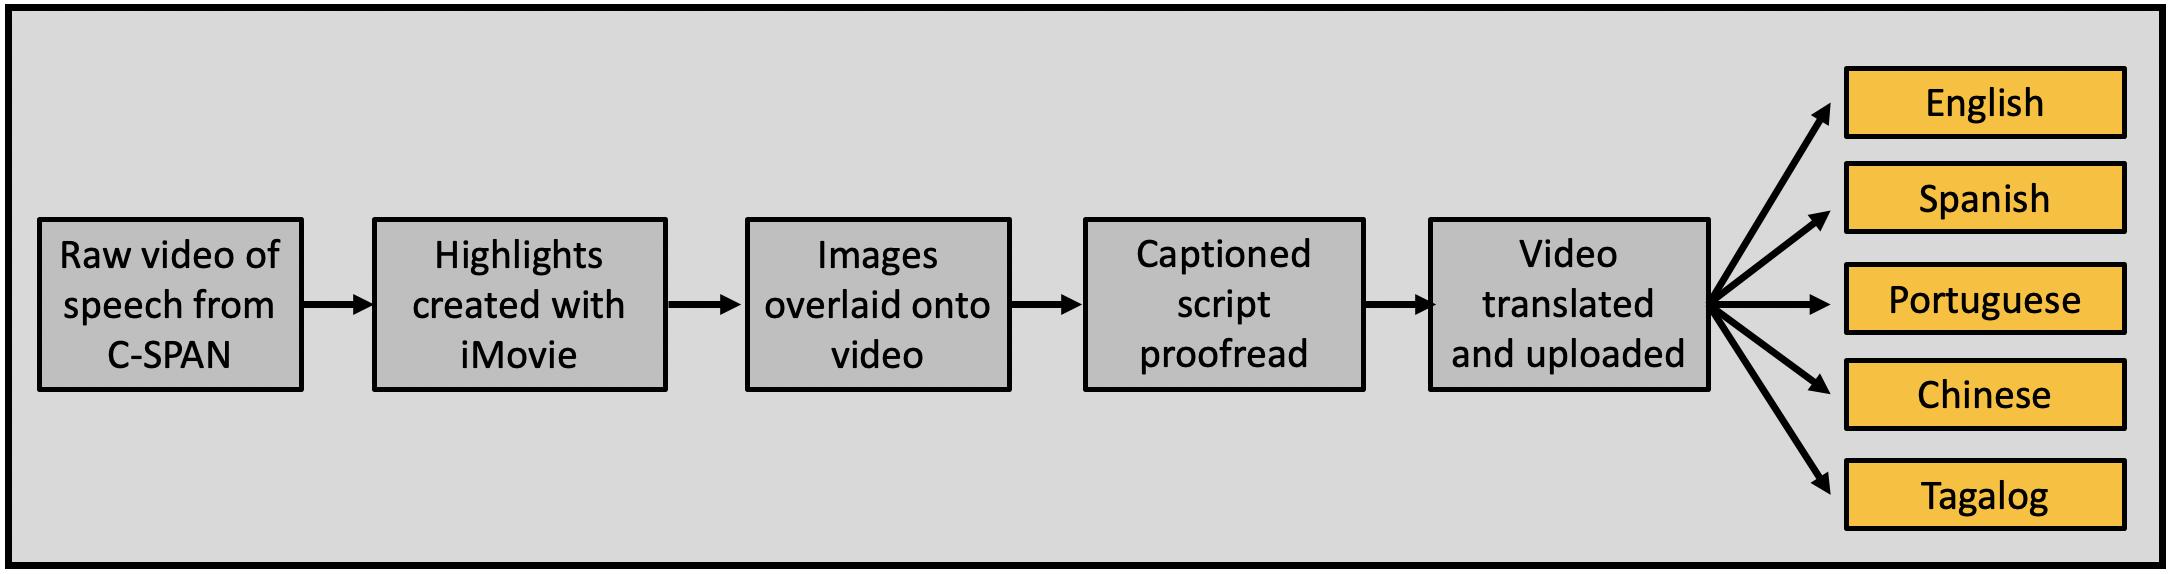 How to create a rapid response video in multiple languages